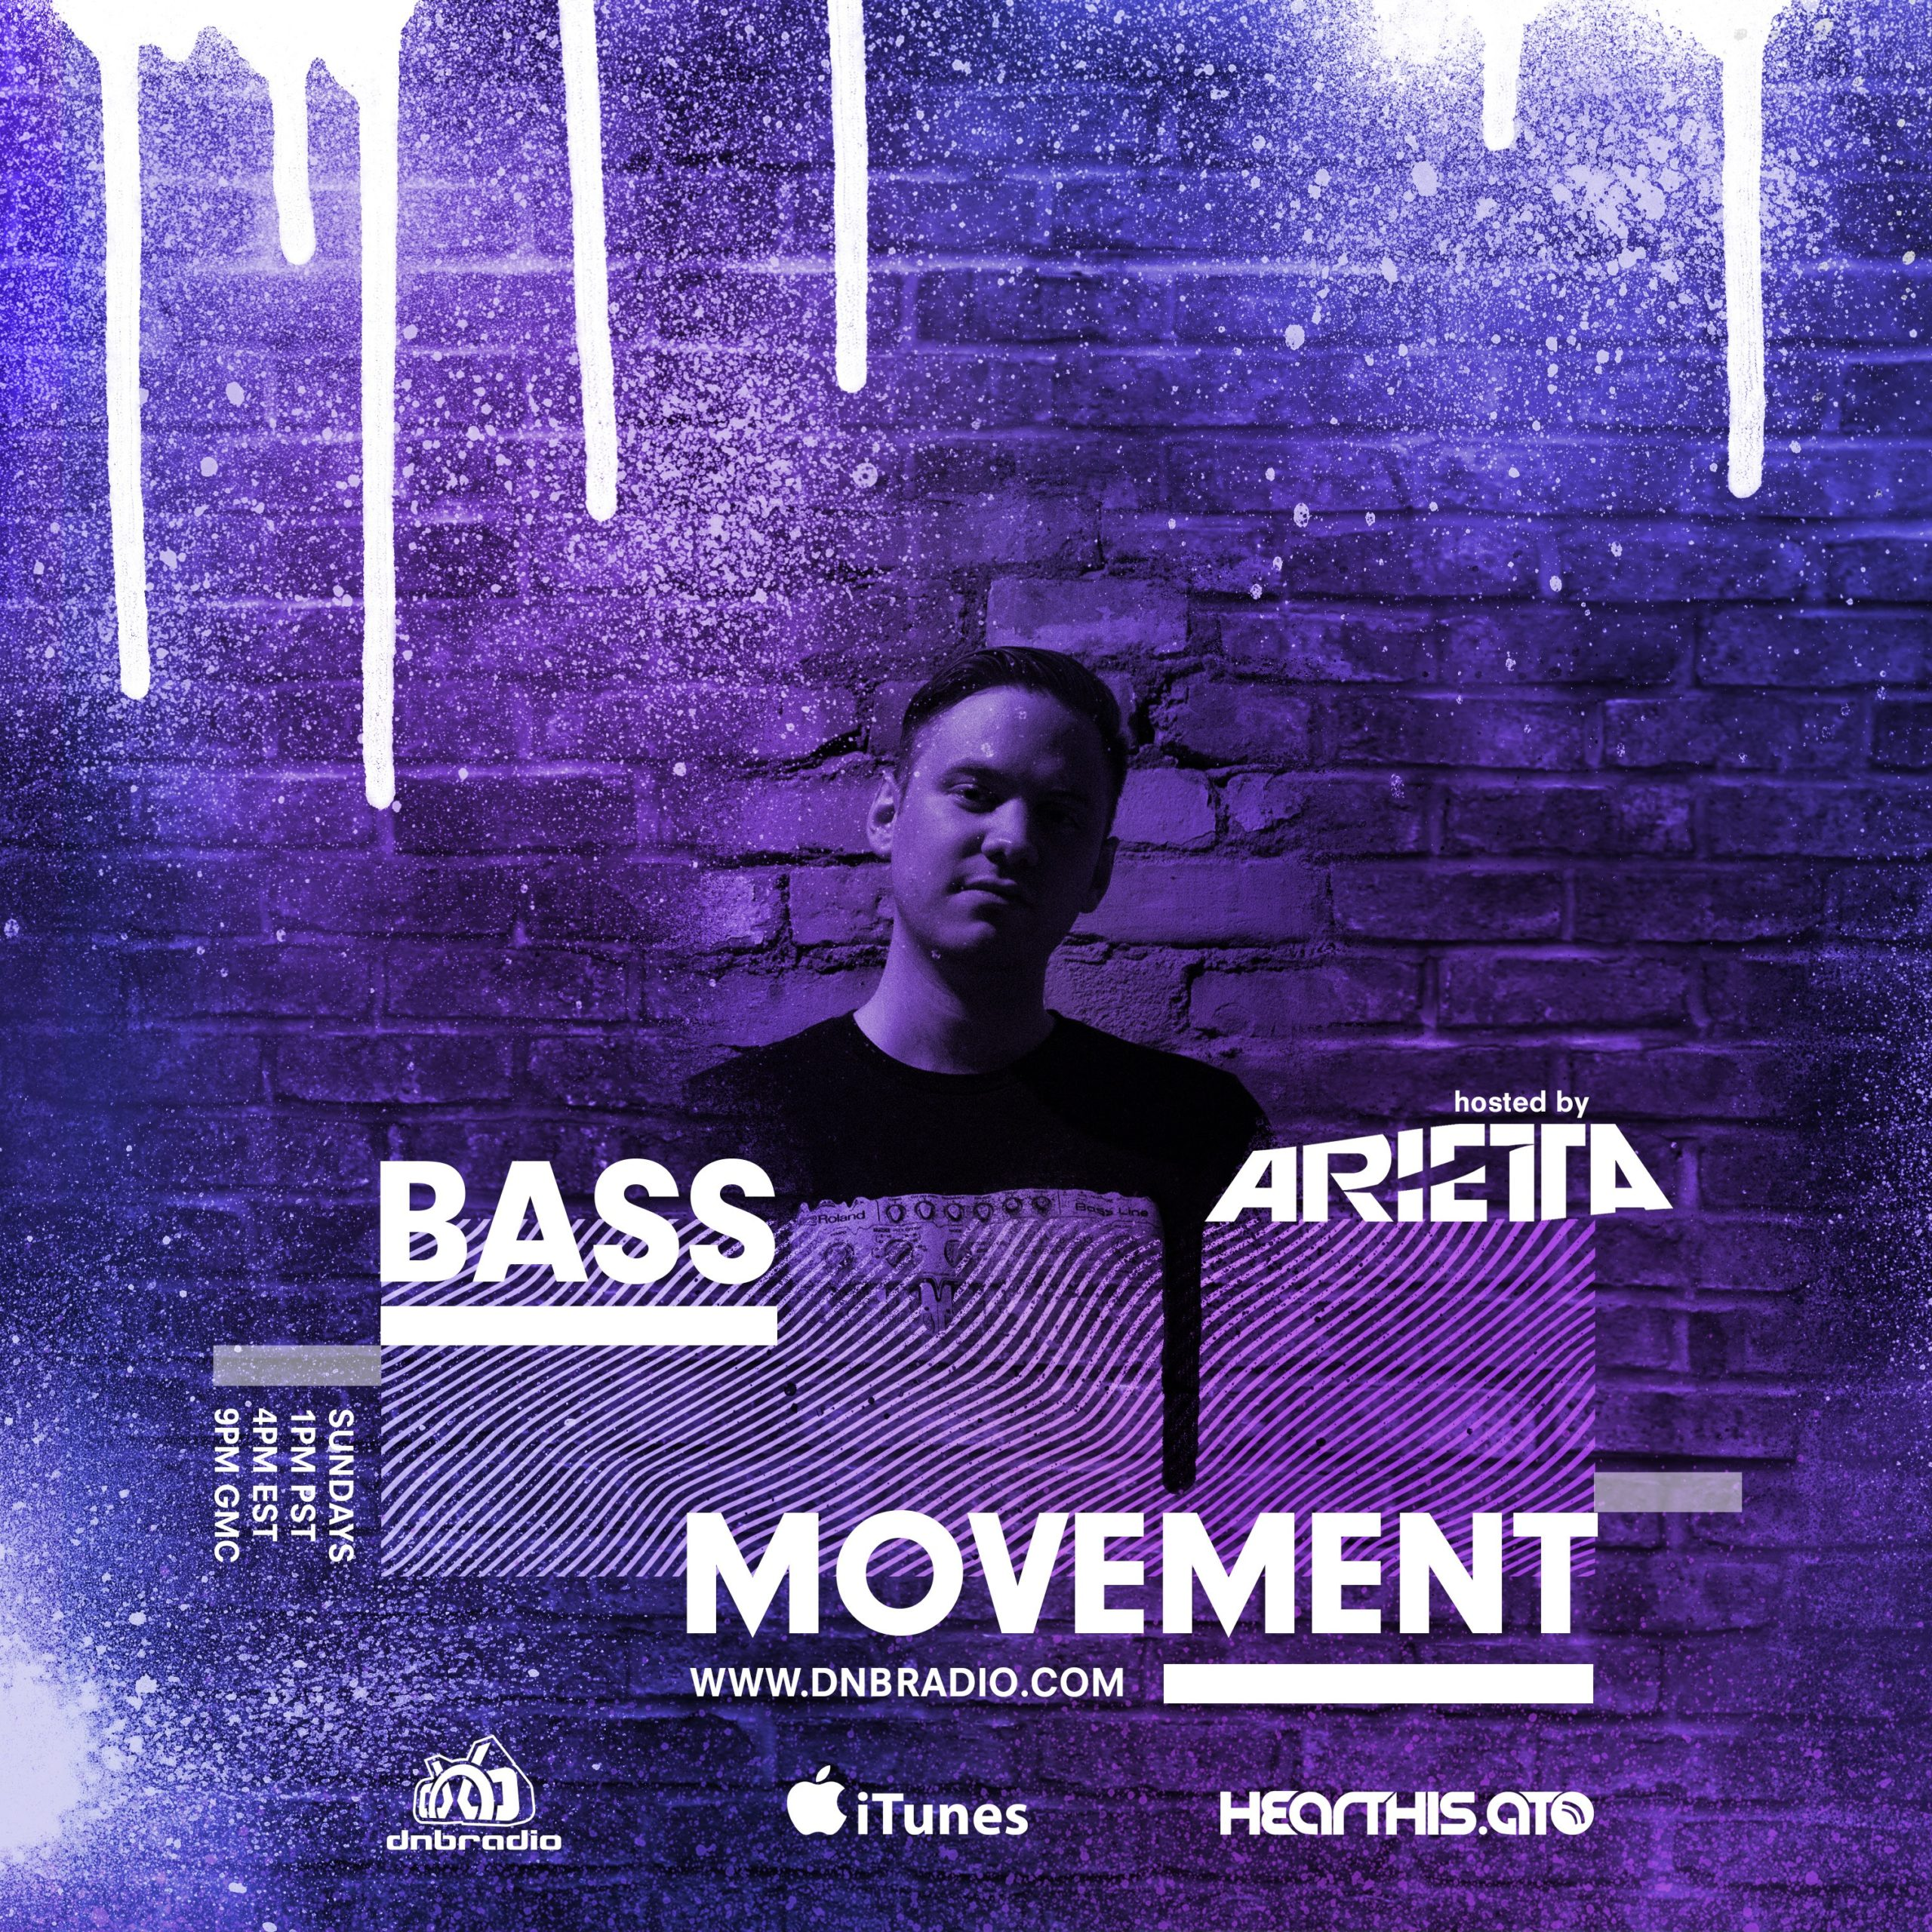 Bass Movement